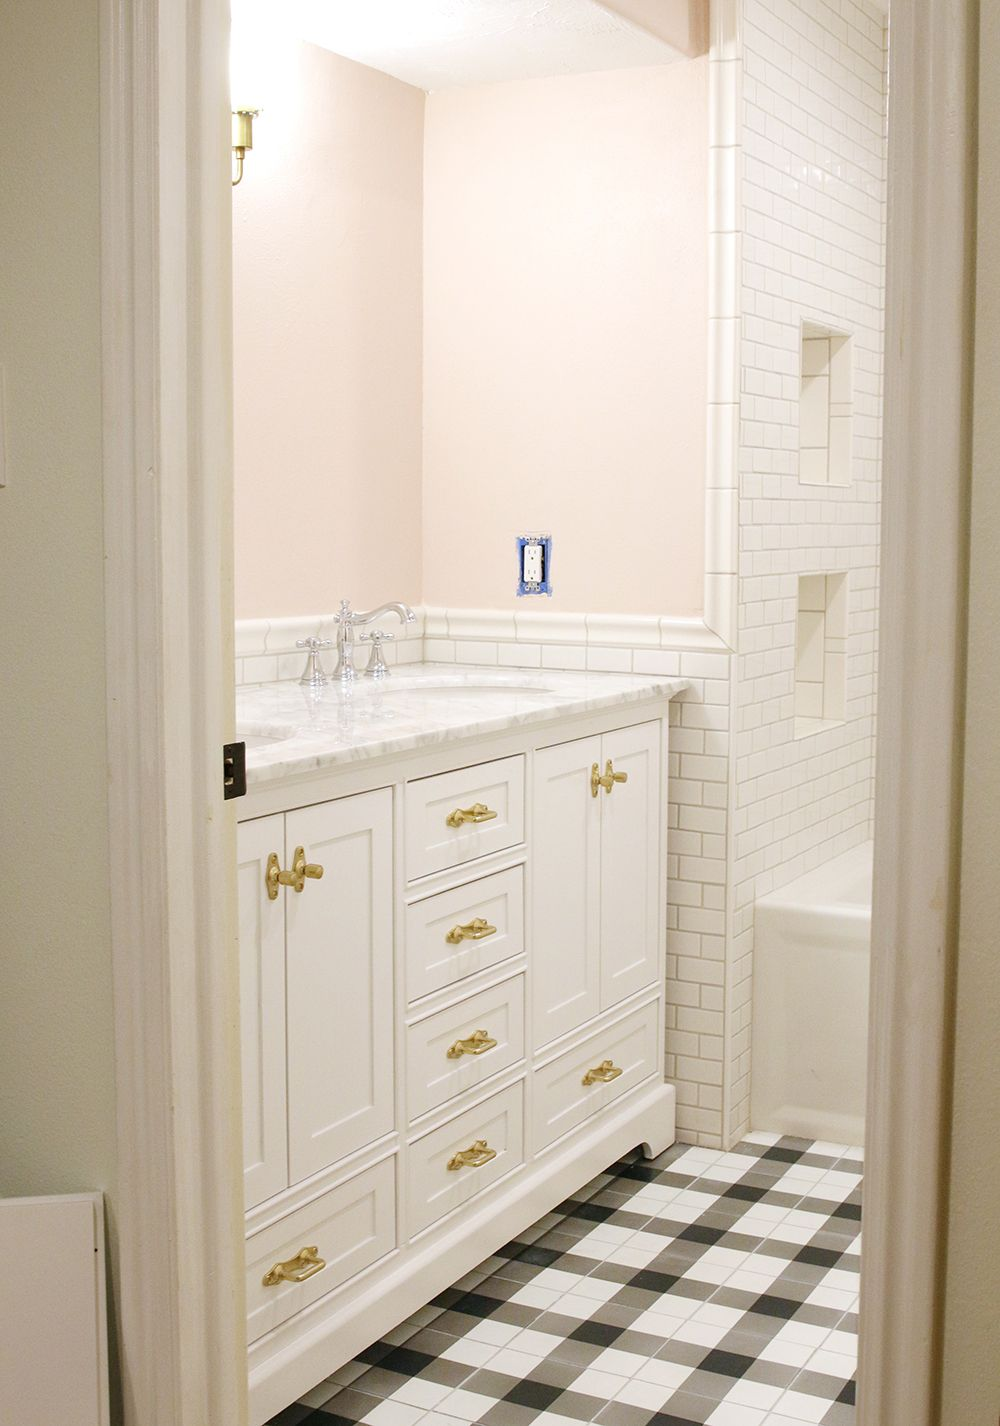 Choosing a Paint Color for Our Small, Windowless Bathroom | Farrow ...